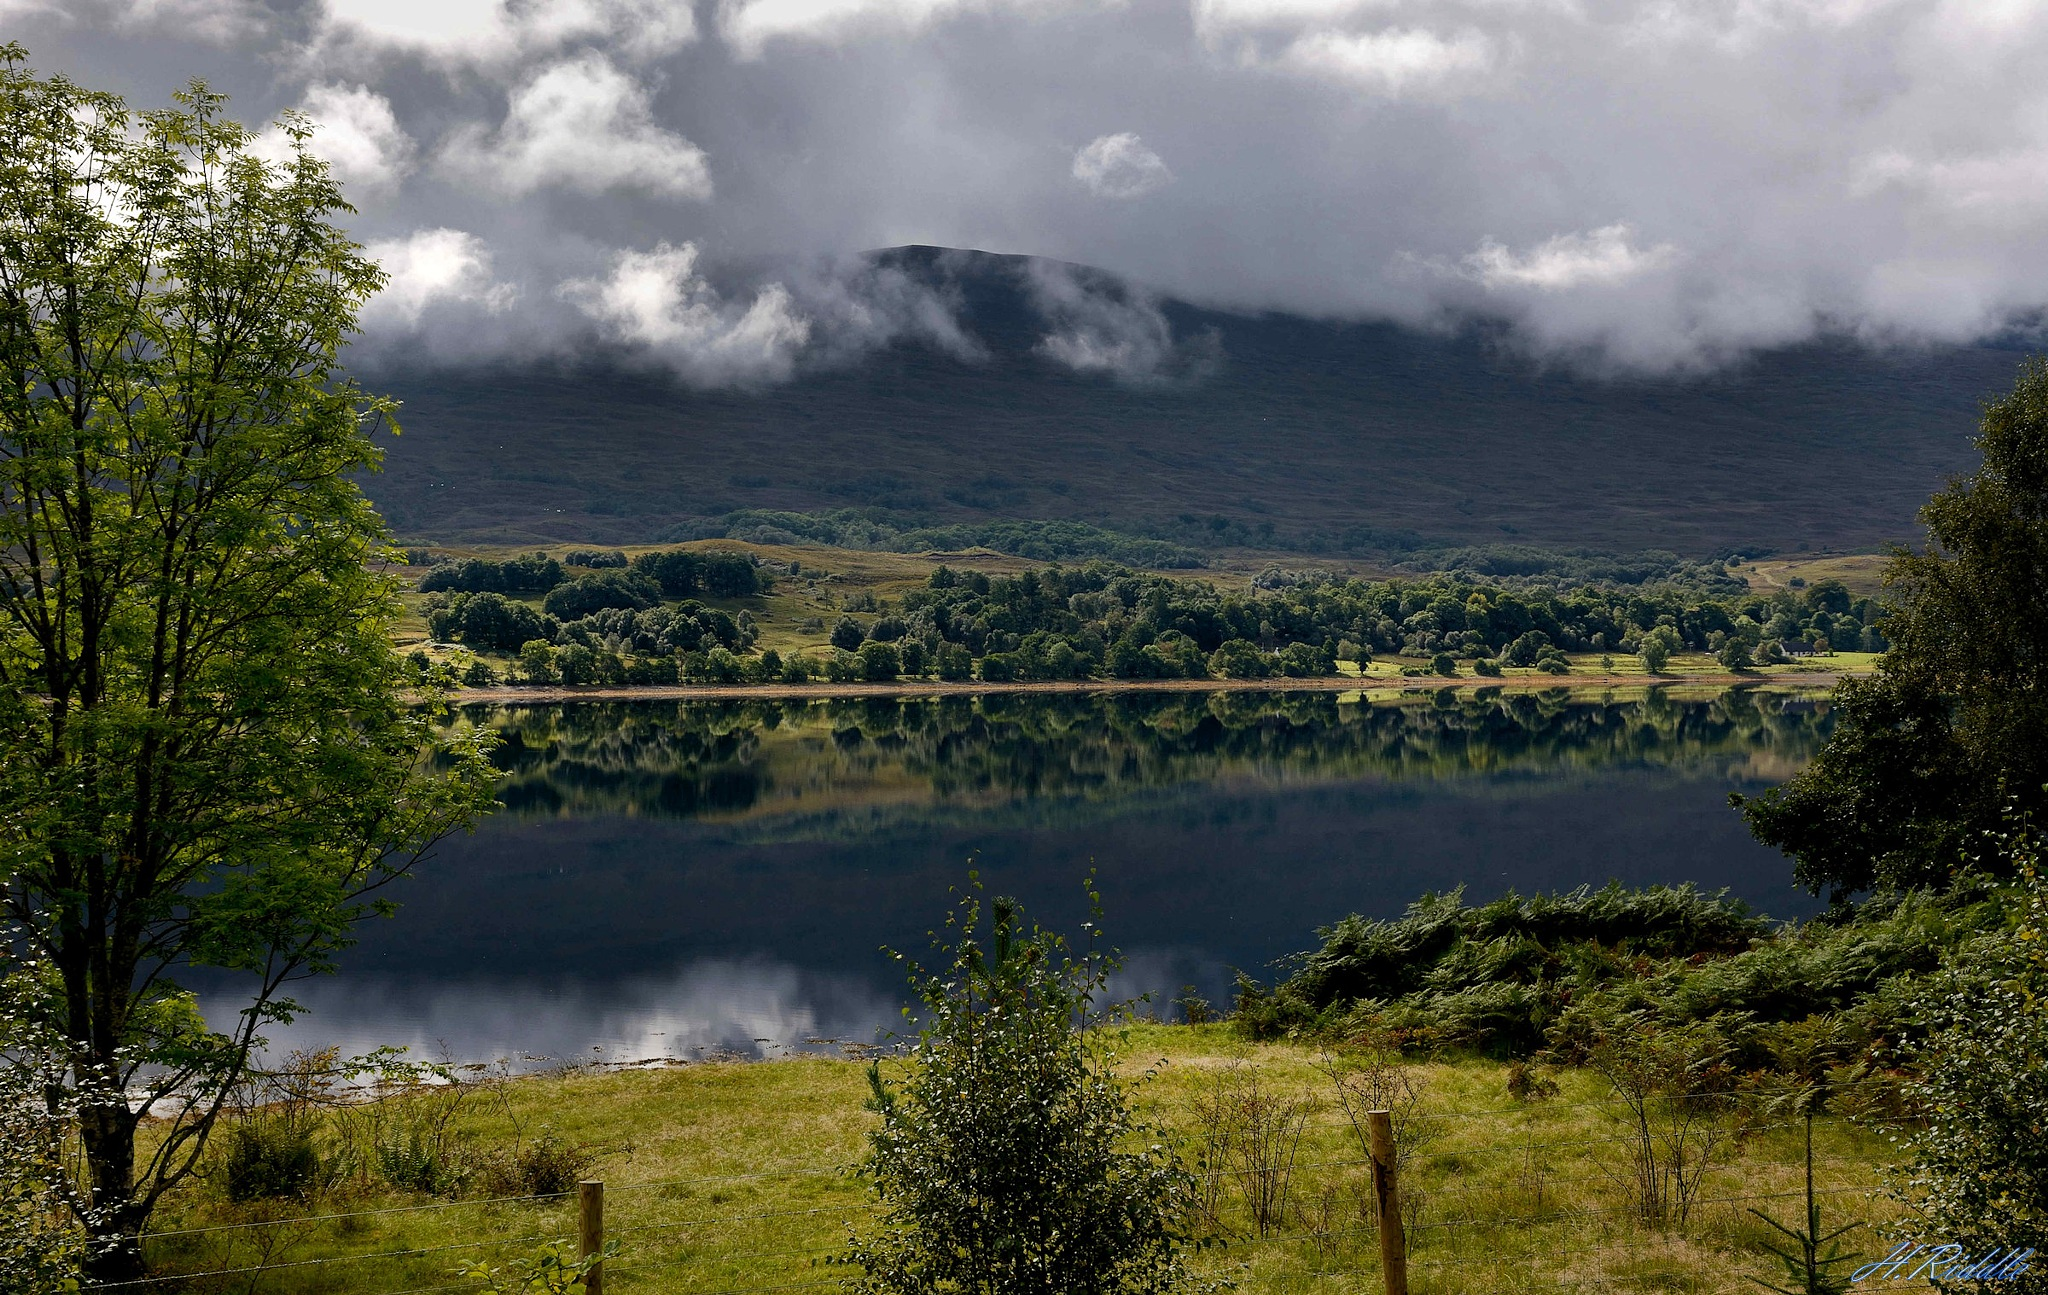 Highland reflections by Herb Riddle